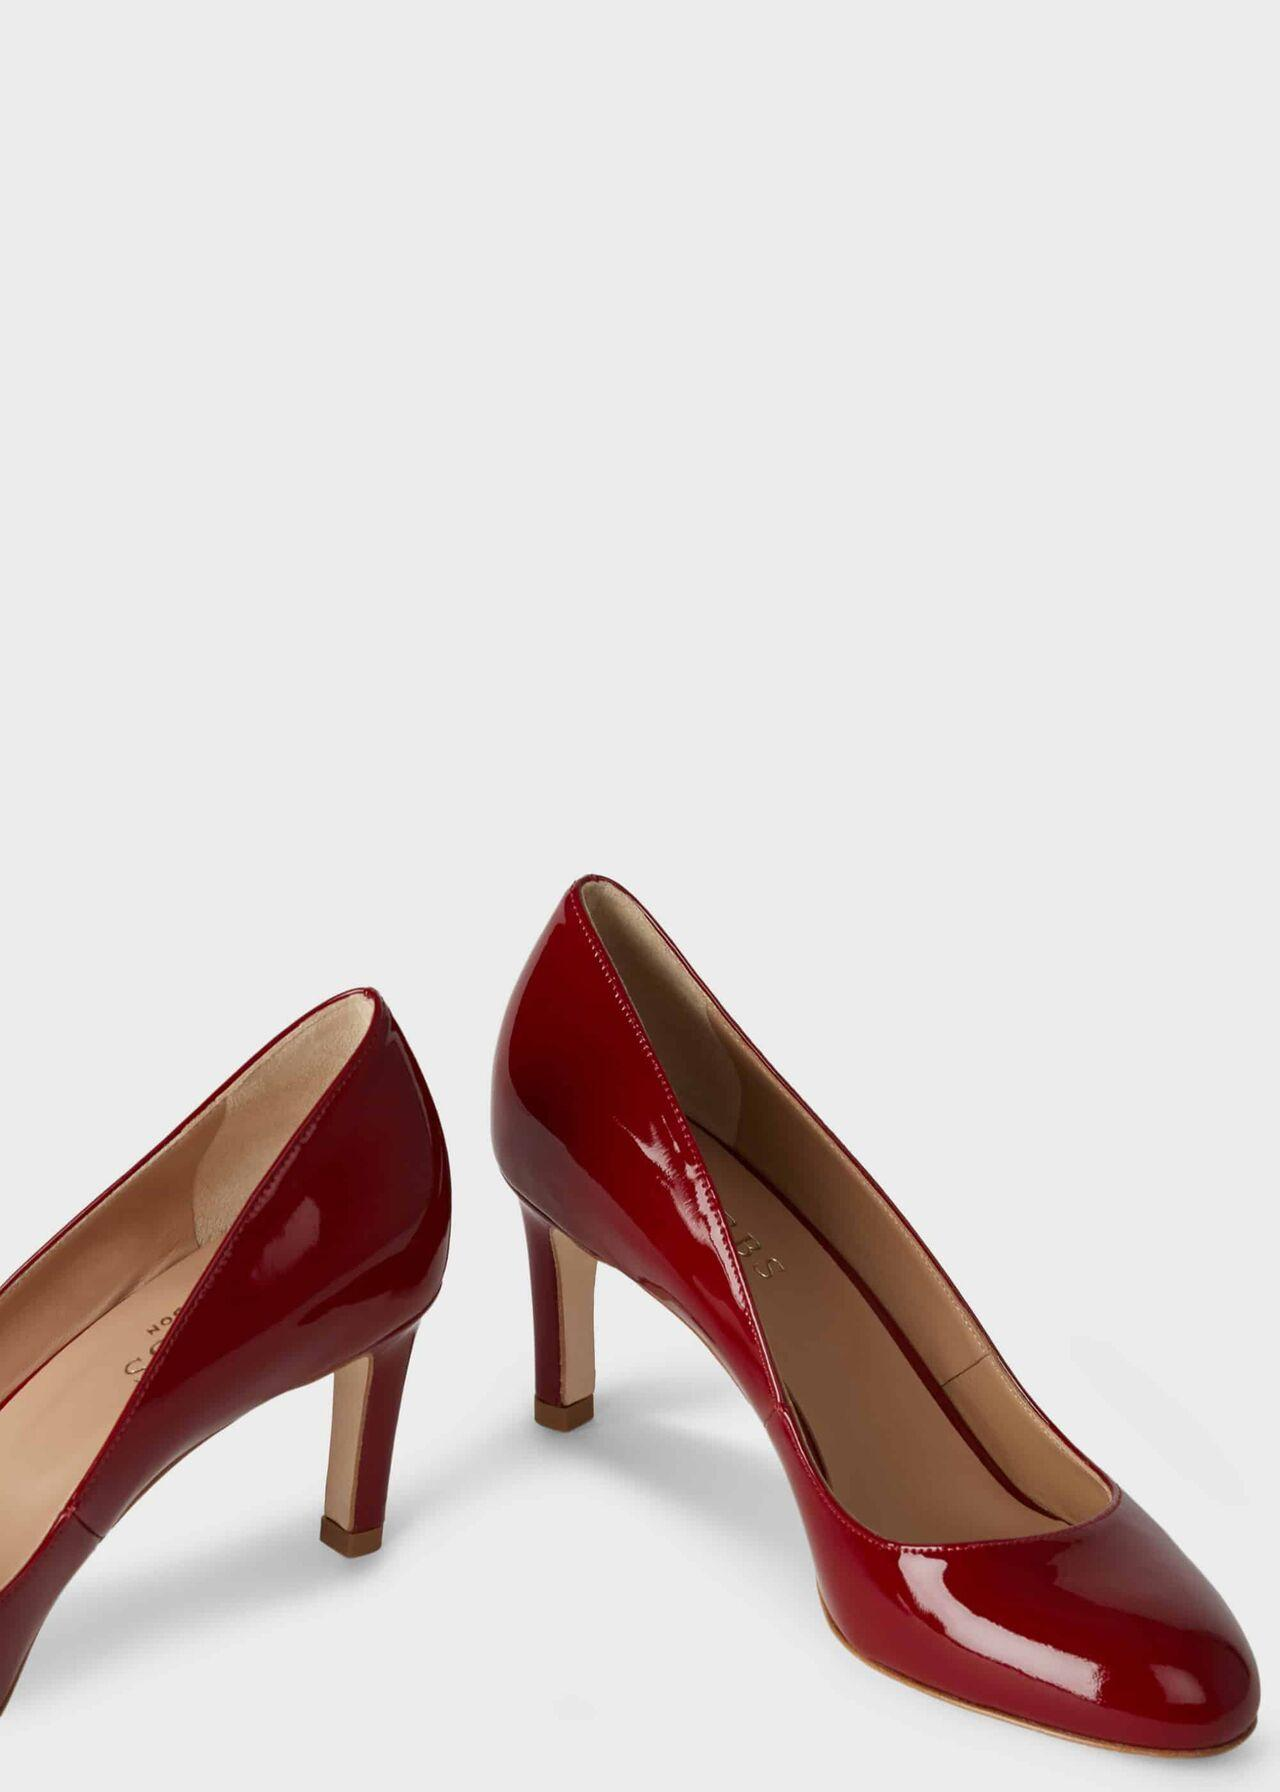 Hobbs Leather Sophia Court in Red - Lyst